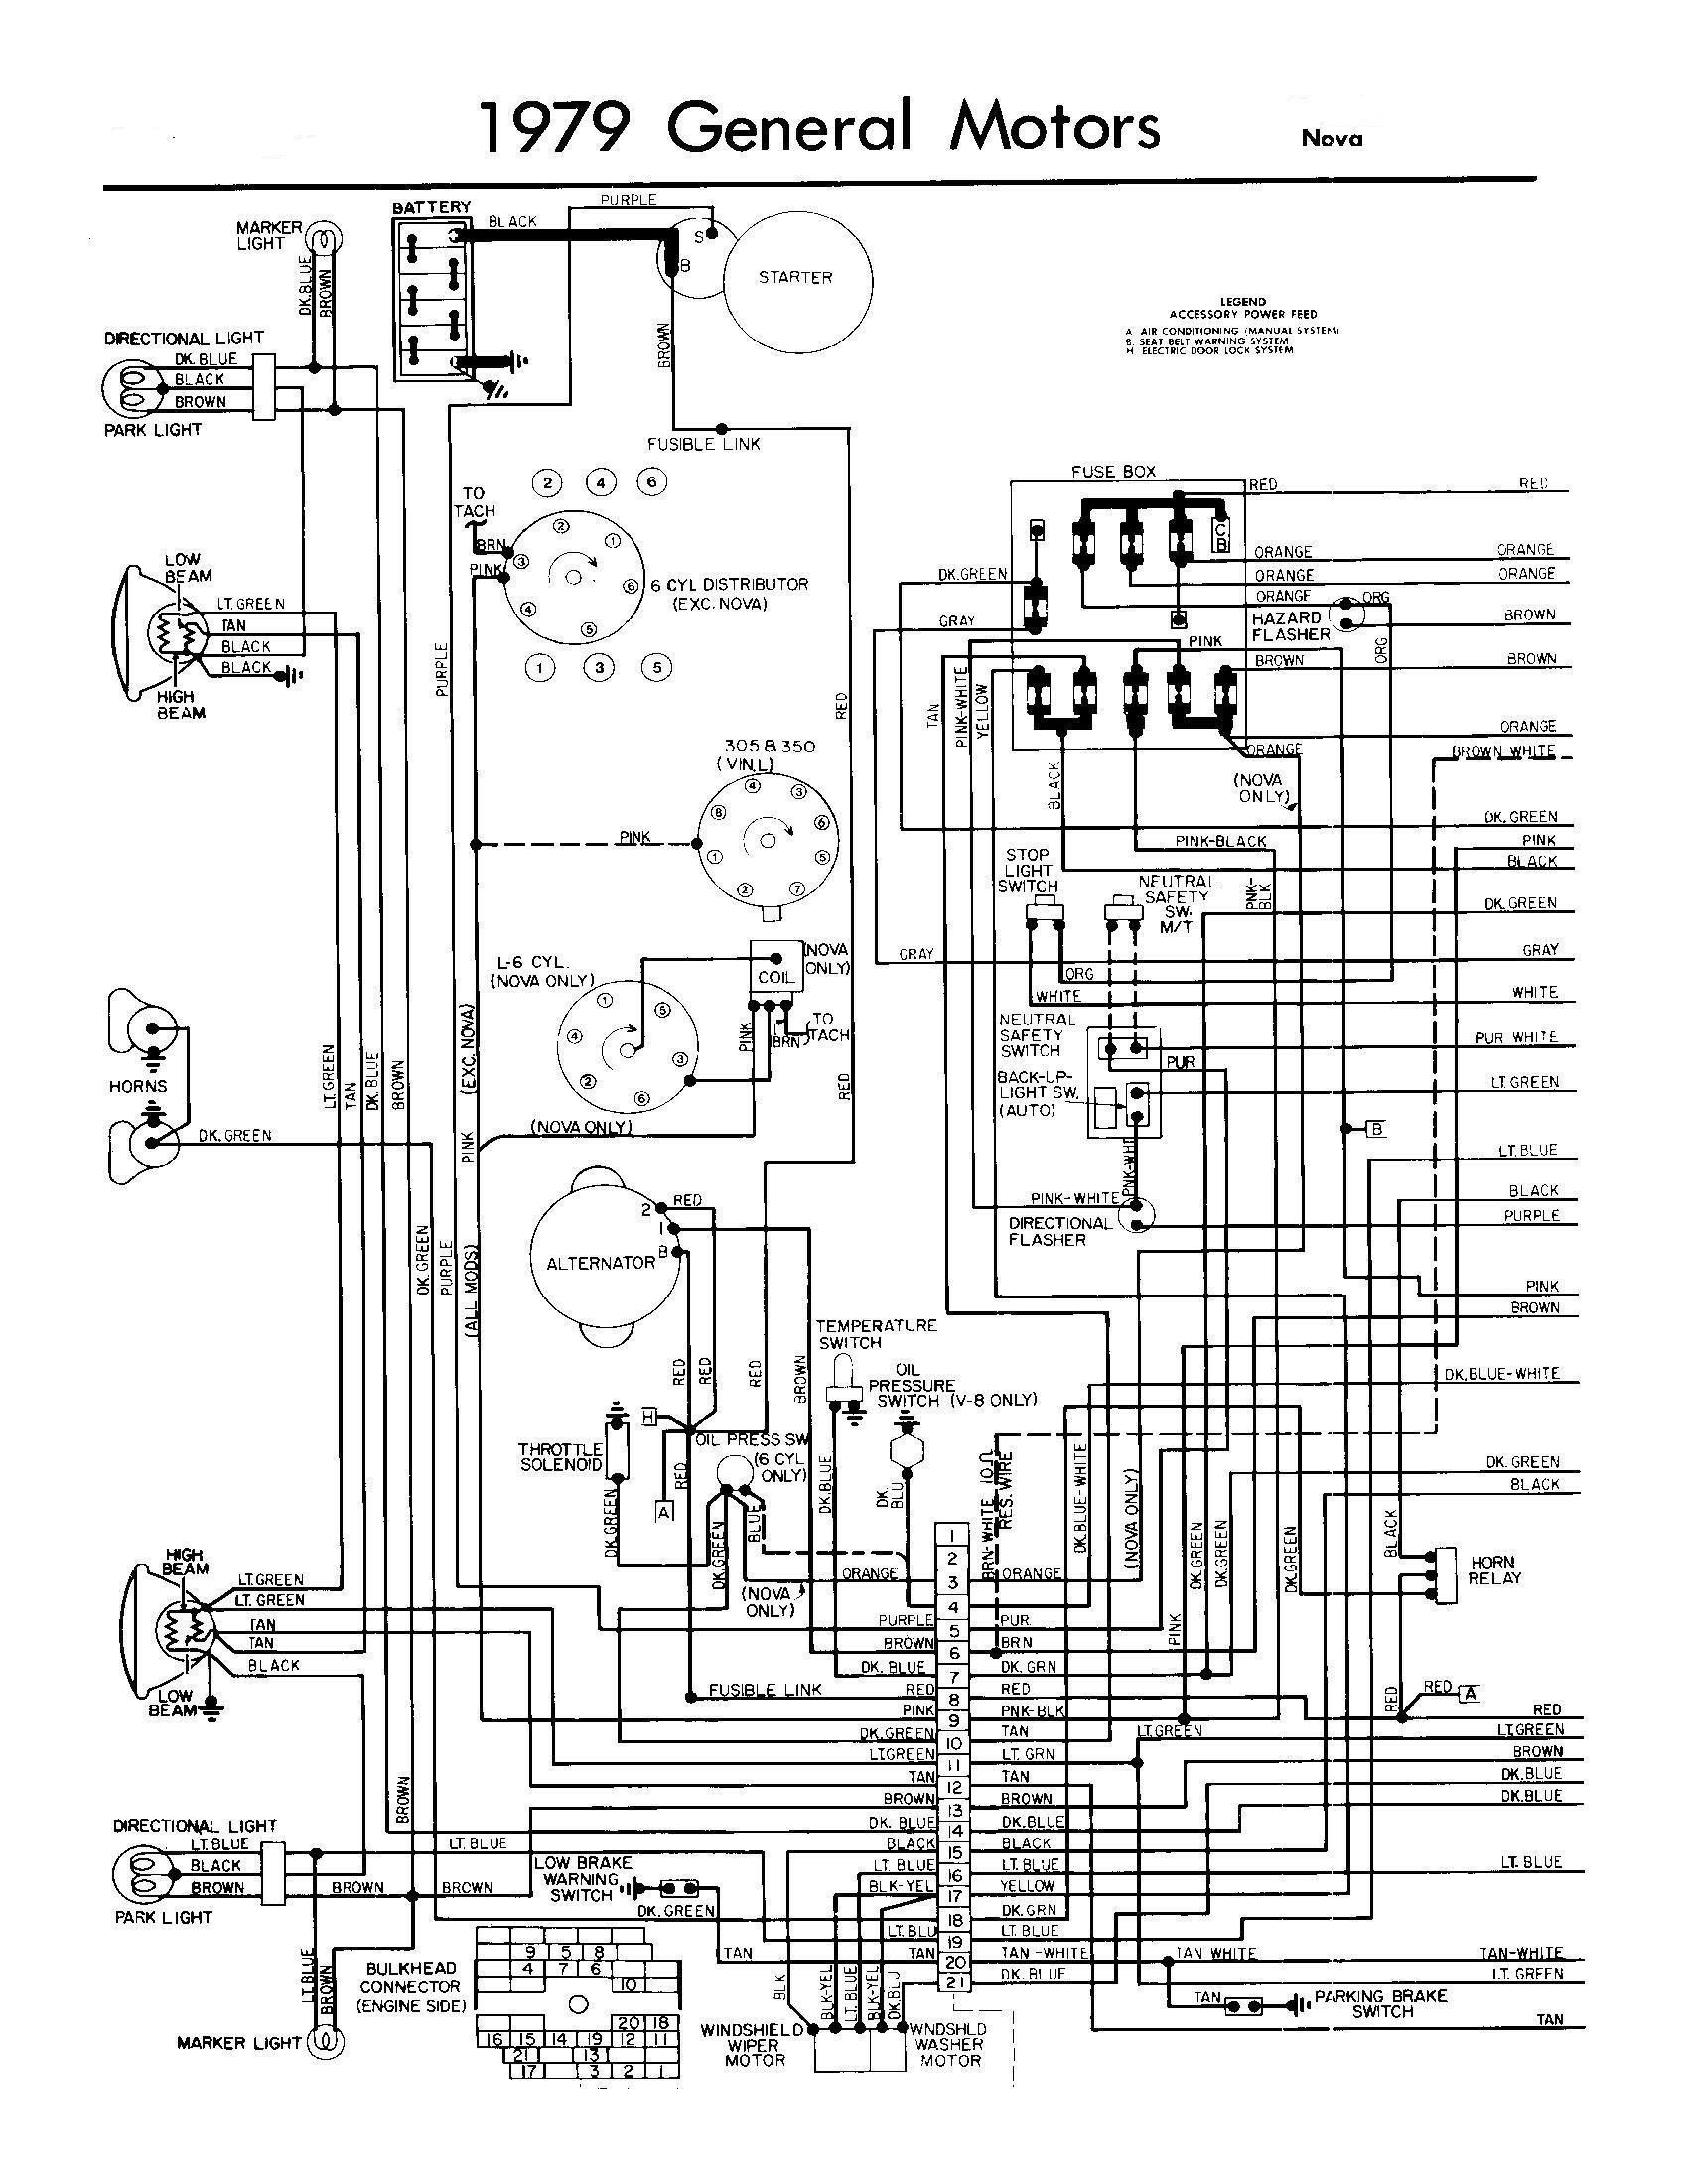 Perfect Ford Alternator Wiring Diagram 85 Ford Bronco Wiring Diagram Wiring Diagram Rh 02 Ansolsolder Co 1982 Ford Chevy Trucks 1979 Chevy Truck 79 Chevy Truck